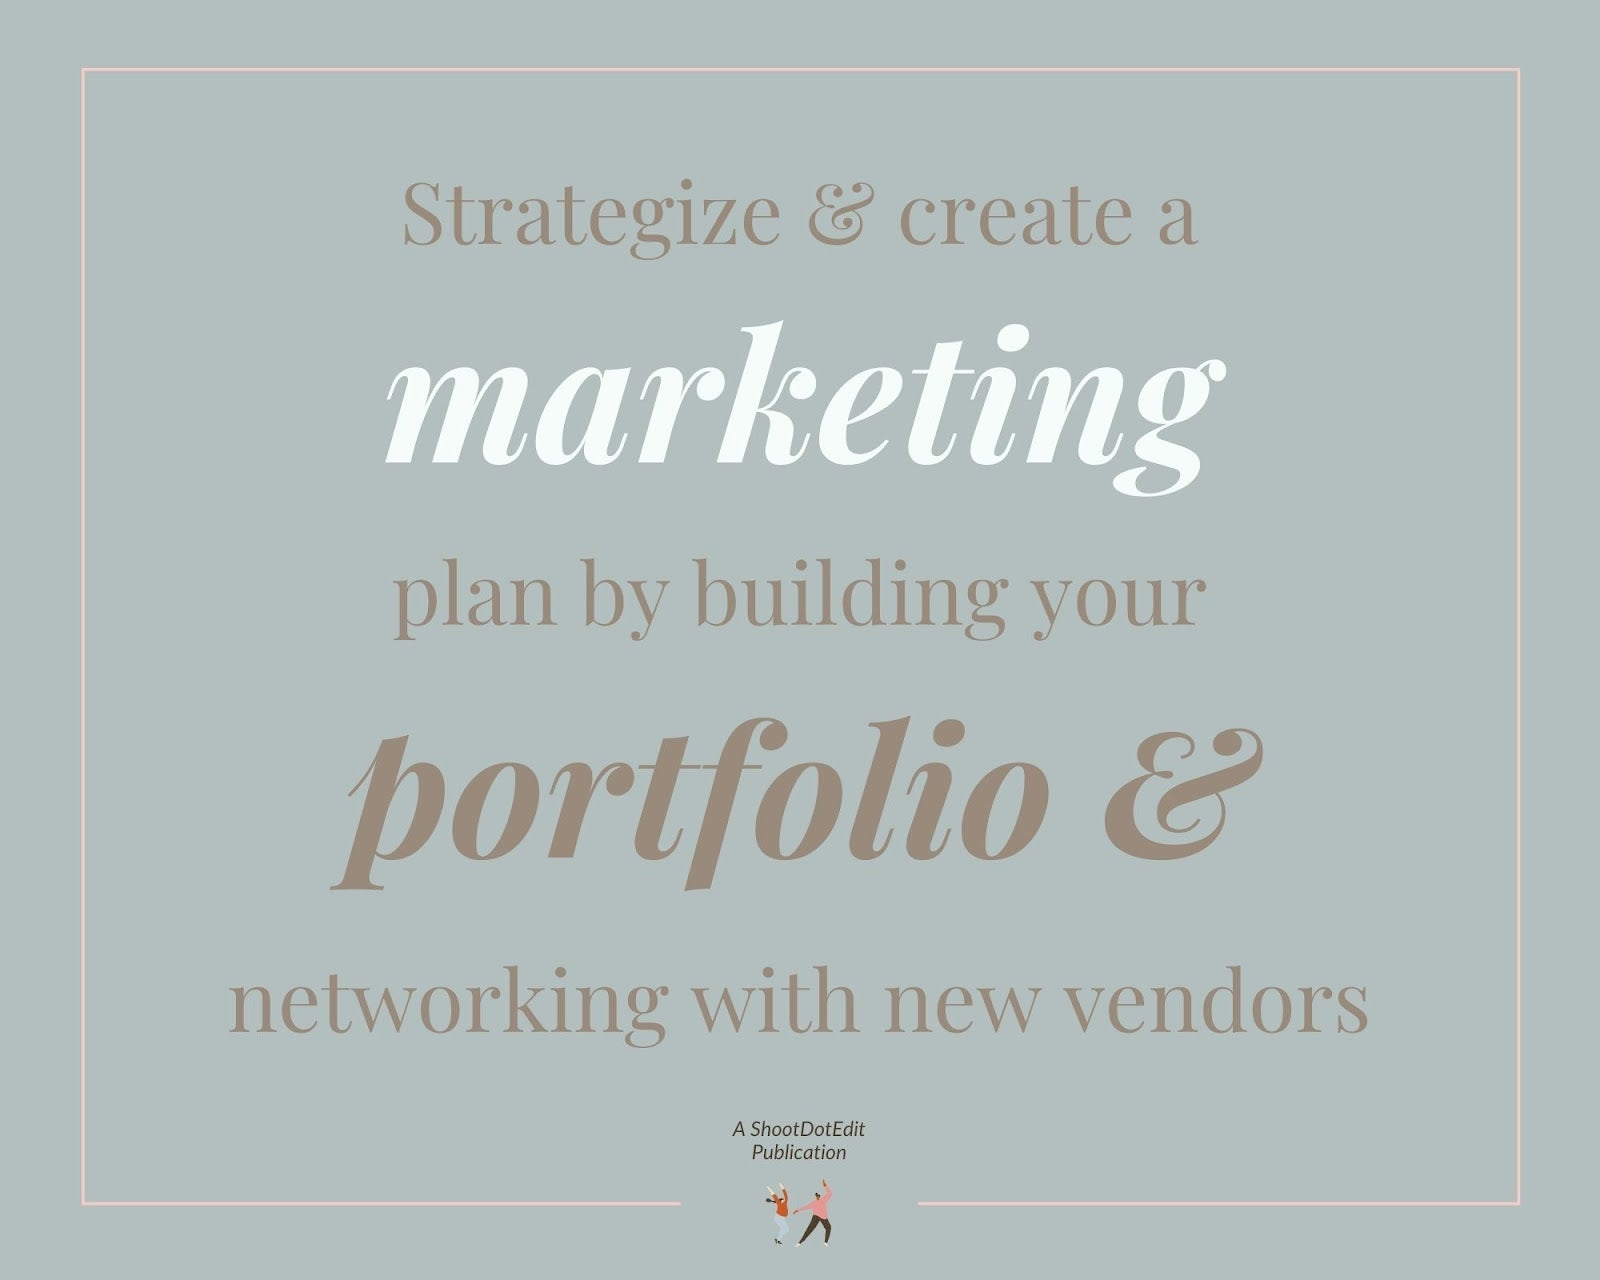 Infographic stating strategize and create a marketing plan by building your portfolio and networking with new vendors